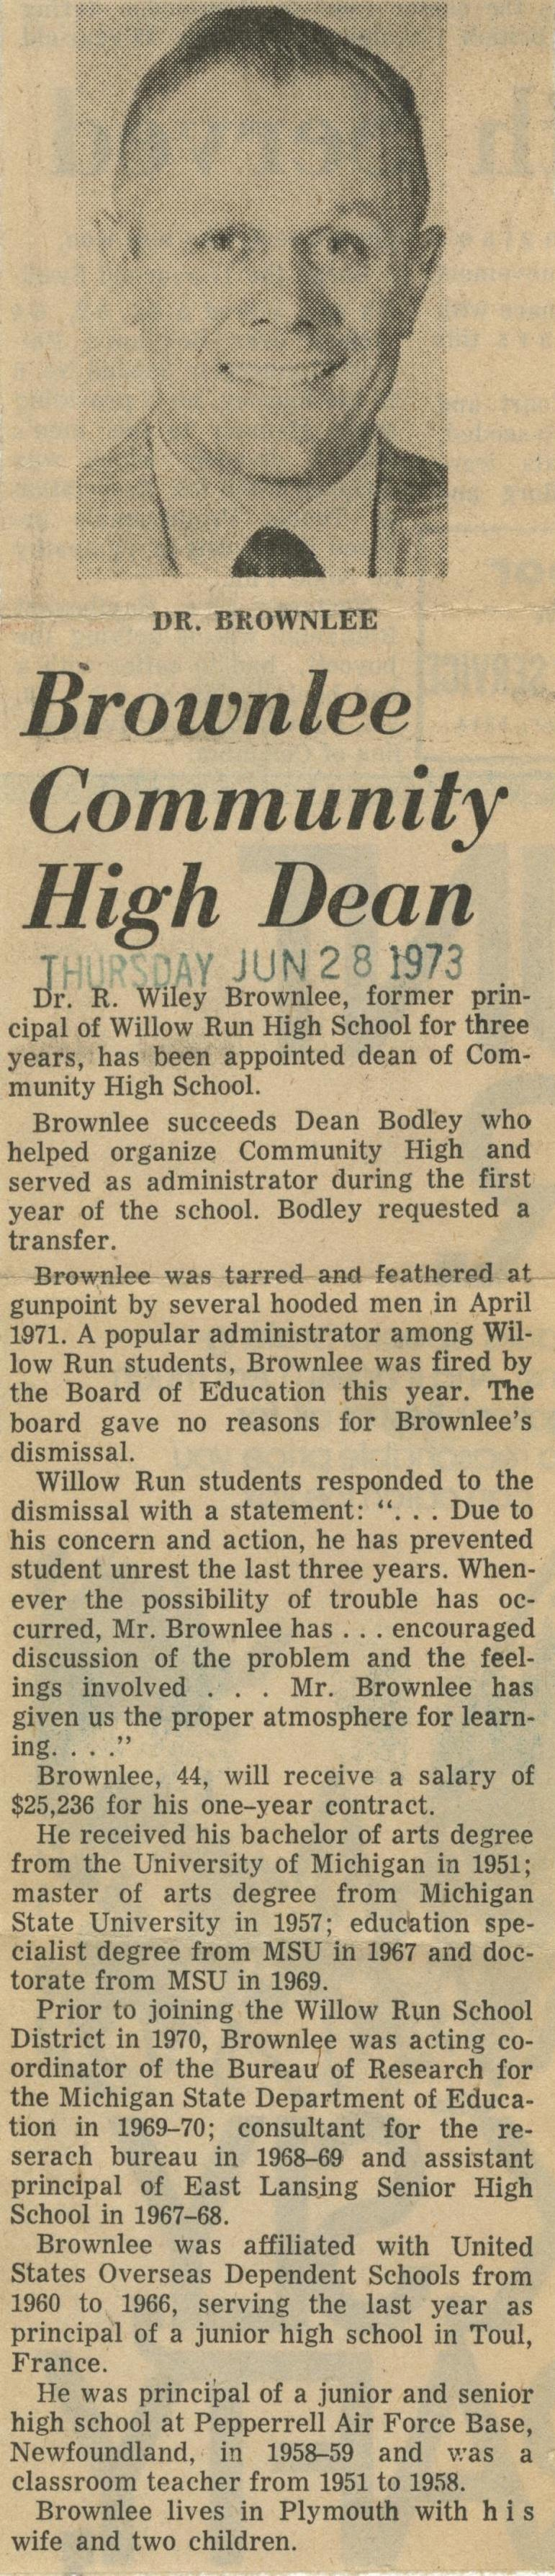 Brownlee Community High Dean image